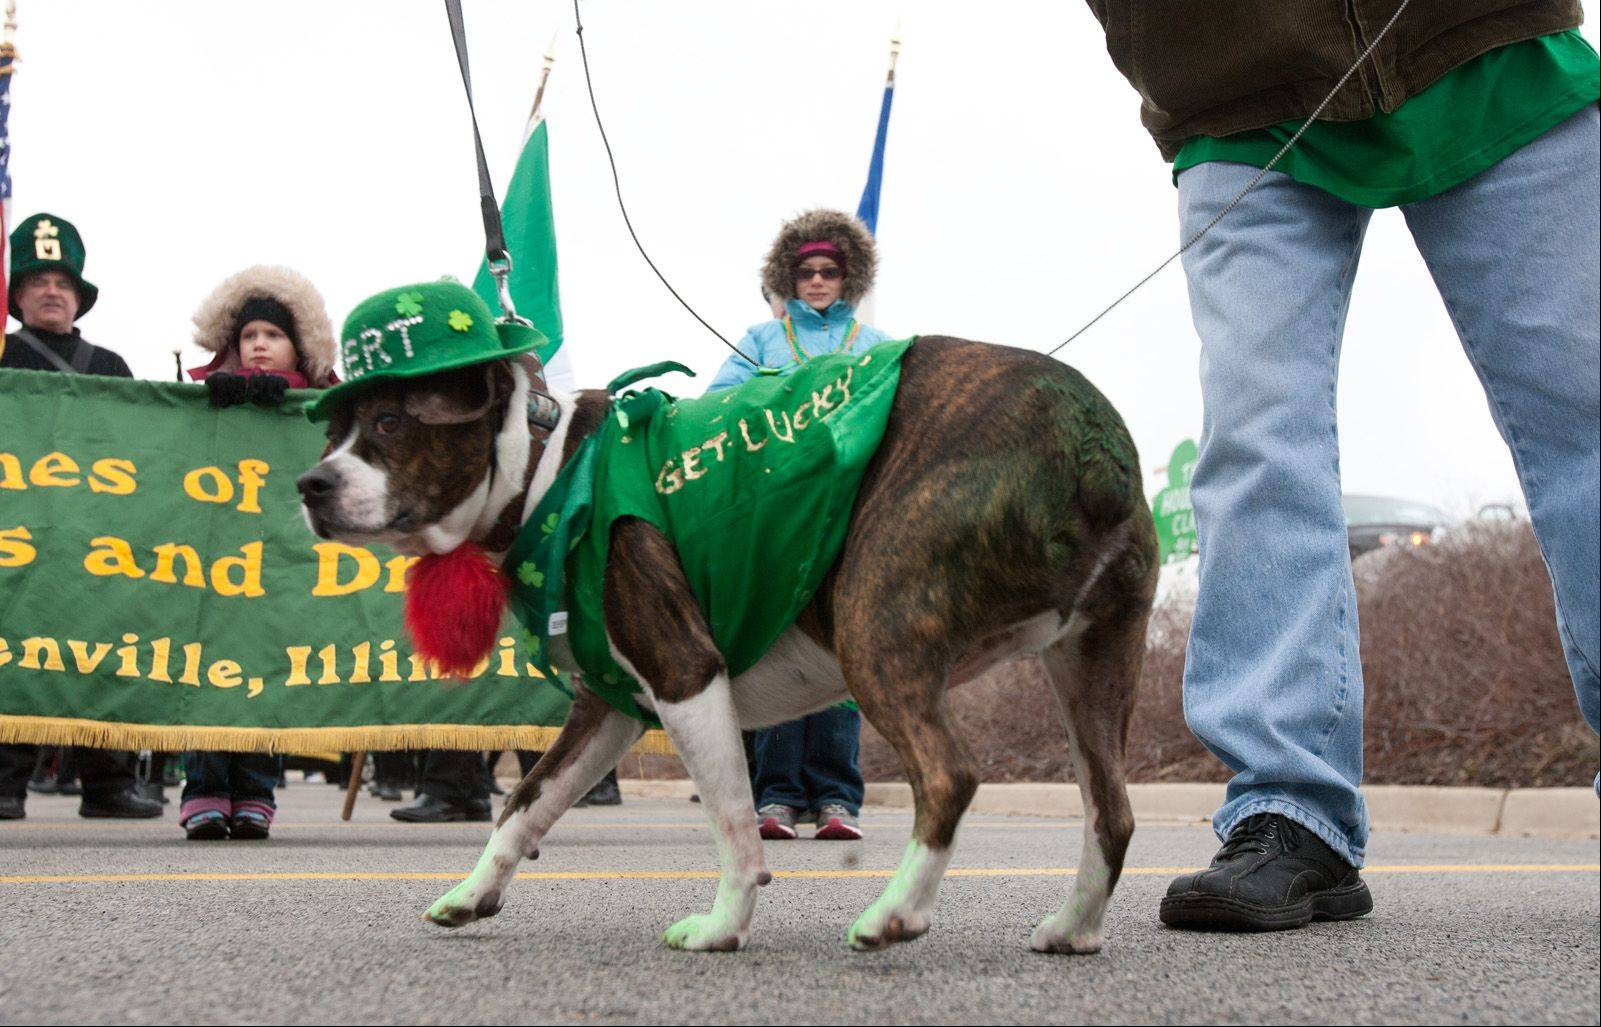 Bert, a Boston terrier Beagle mix, took part in the Naperville St. Patrick's Day parade Saturday.